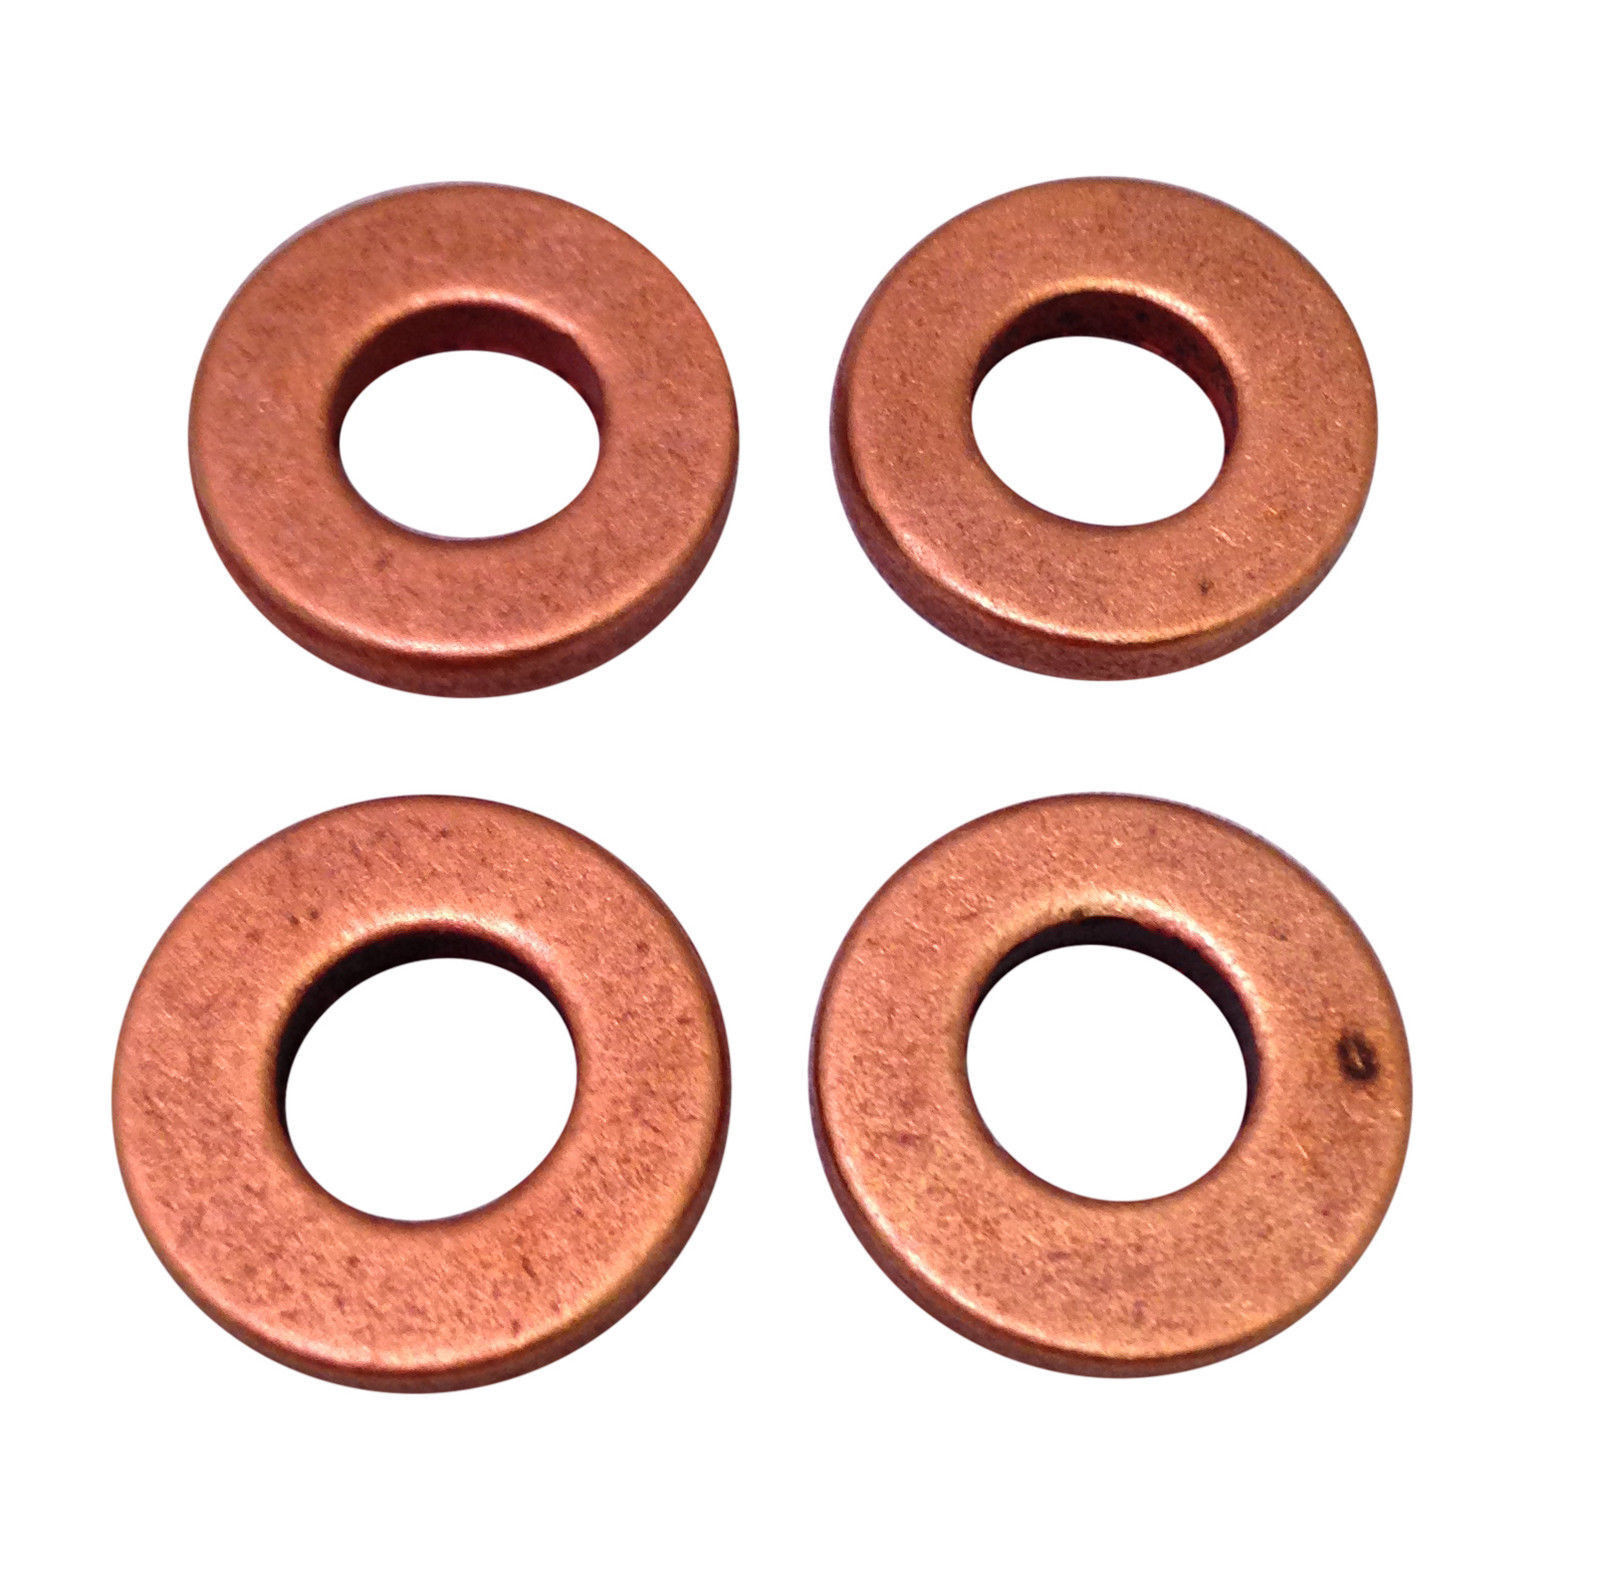 BOSCH COMMON RAIL DIESEL INJECTOR COPPER WASHER SEAL